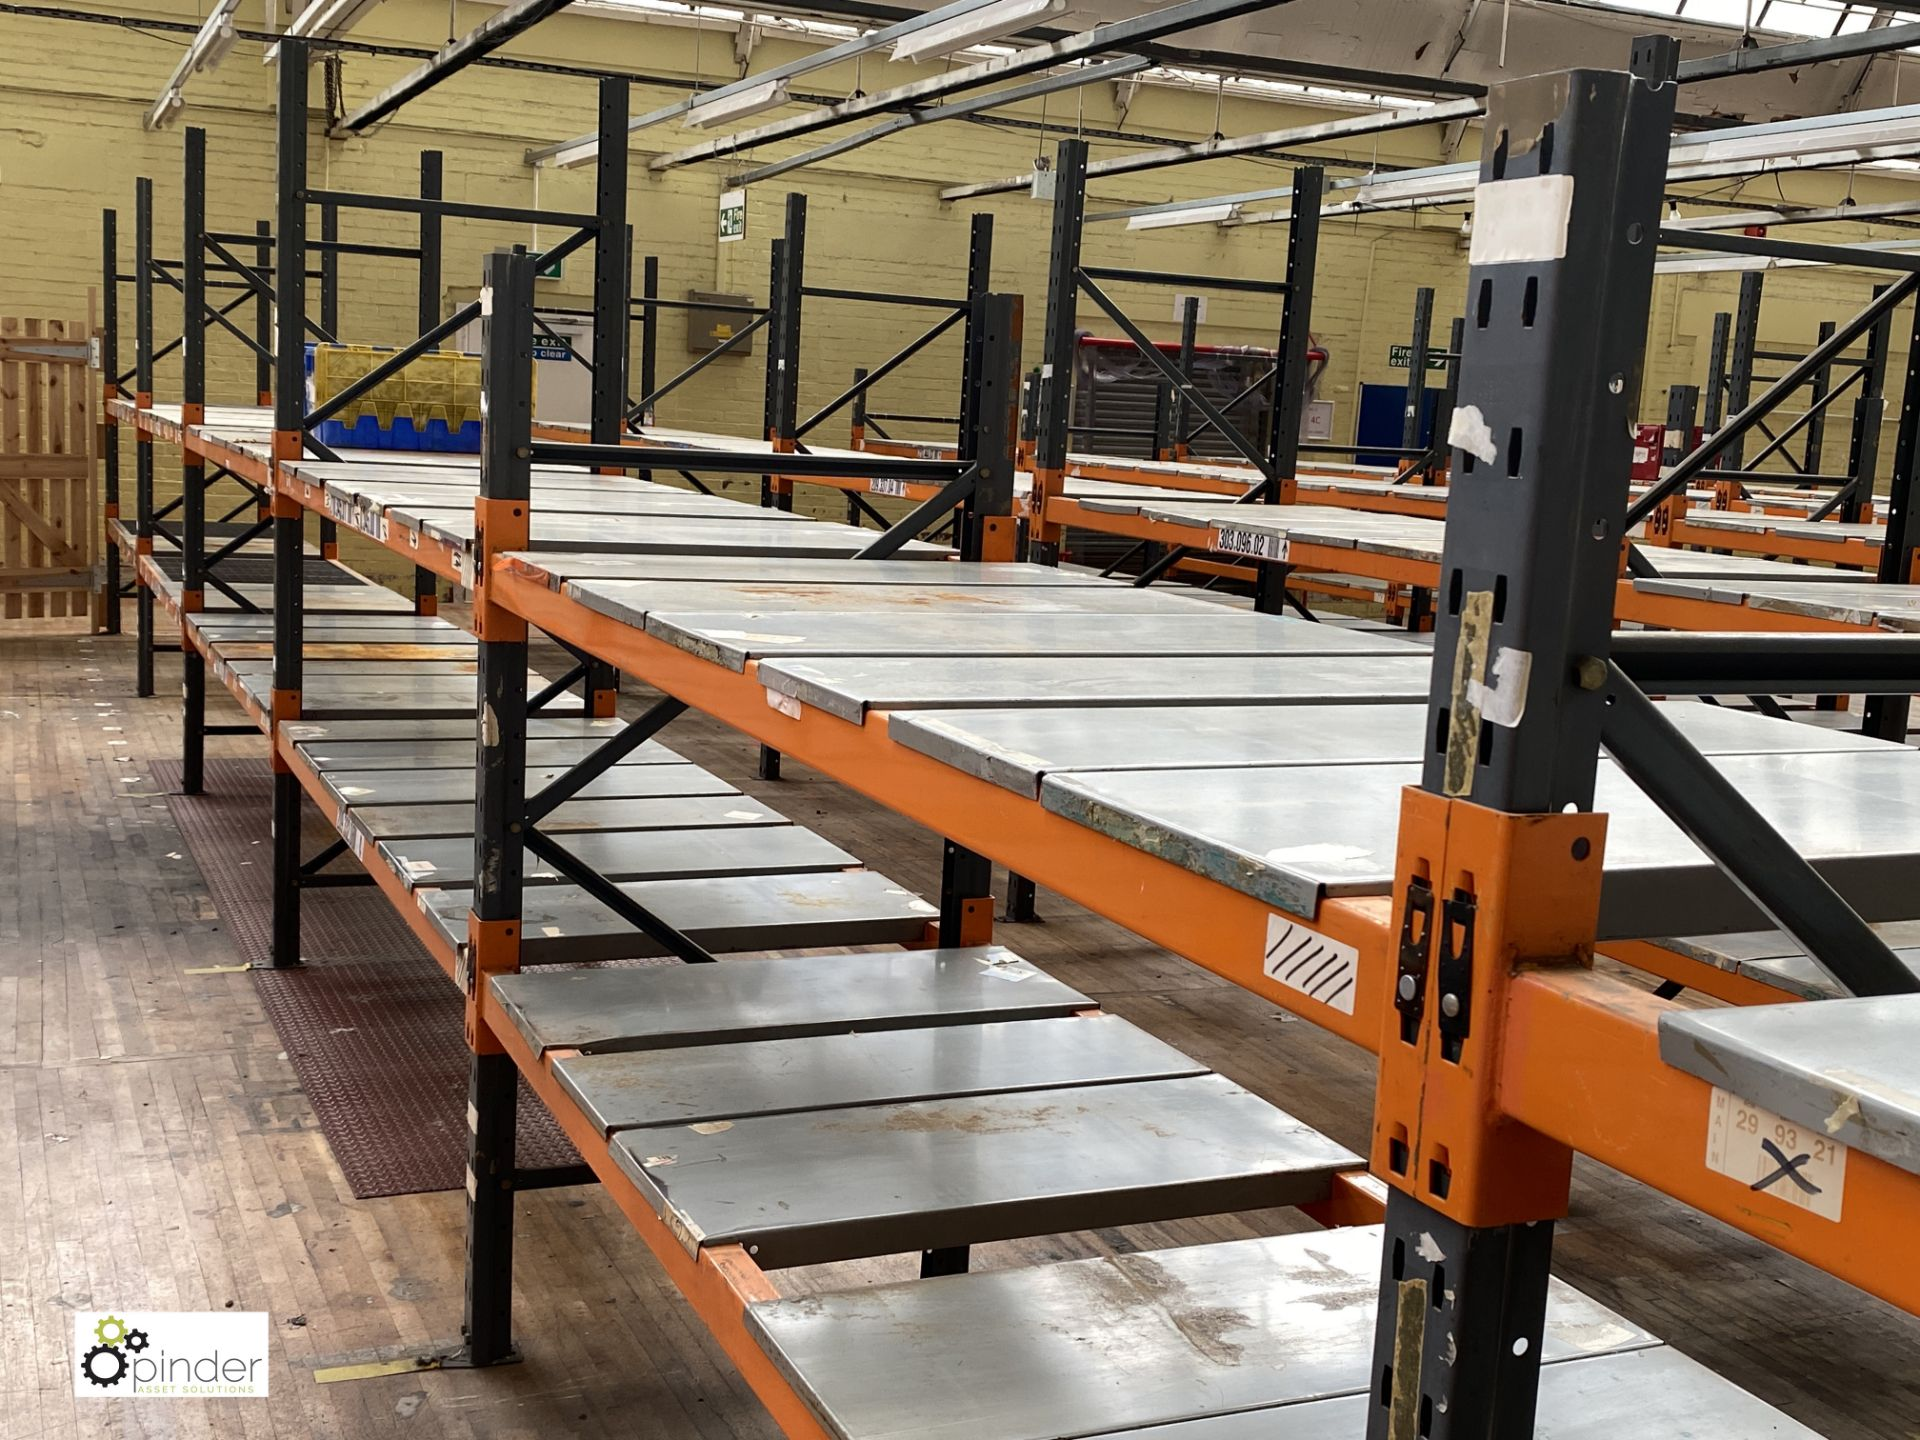 10 bays Dexion Speedlock boltless Racking, comprising 4 uprights 2440mm x 910mm, 7 uprights 1835mm x - Image 3 of 3